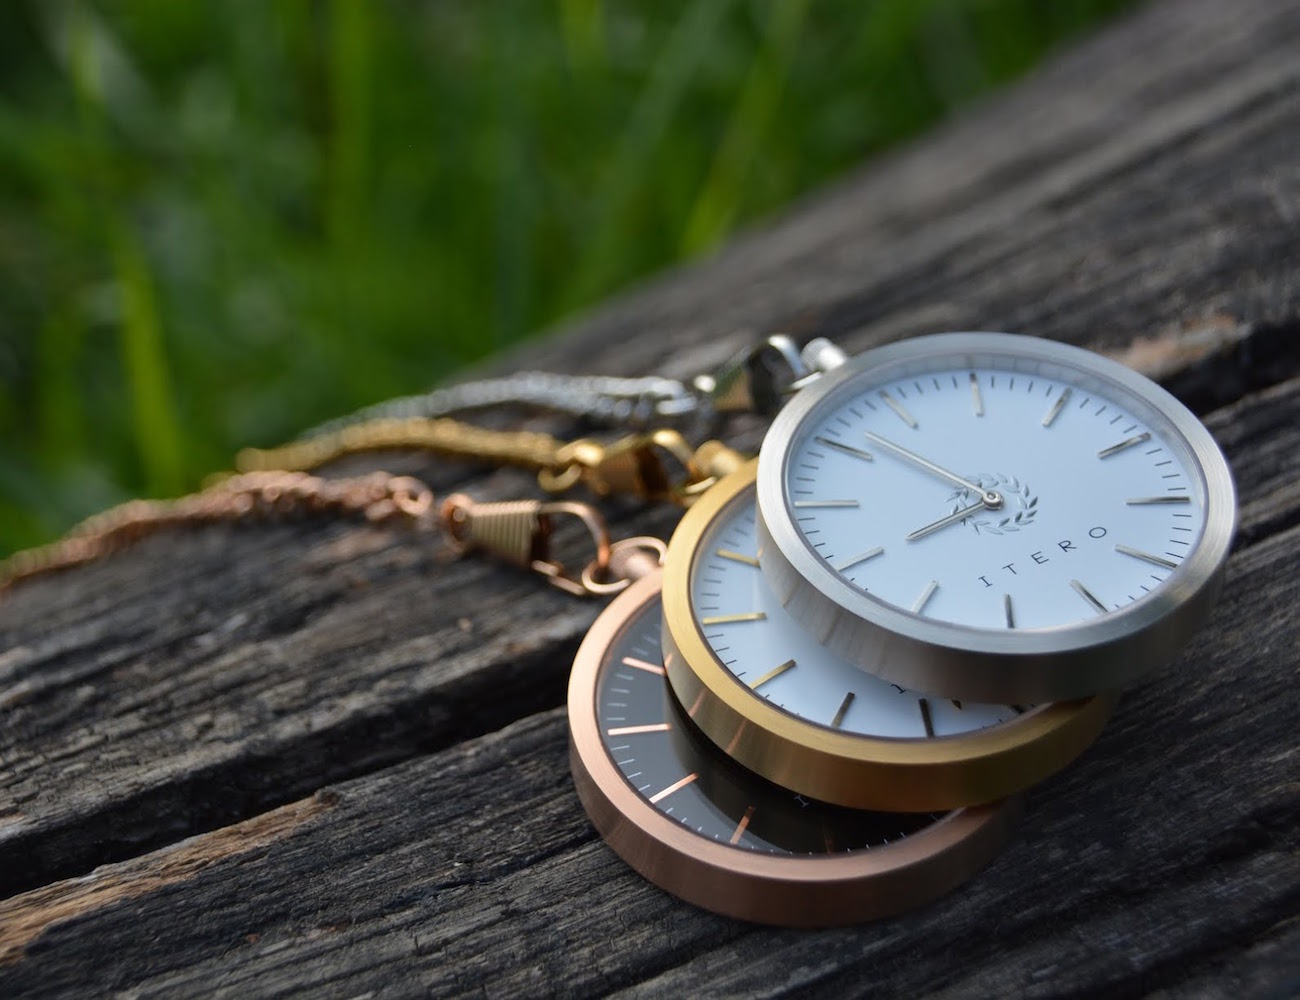 http://cdn.thegadgetflow.com/wp-content/uploads/2015/10/Utero-Pocket-Watches-Are-Back-01.jpg